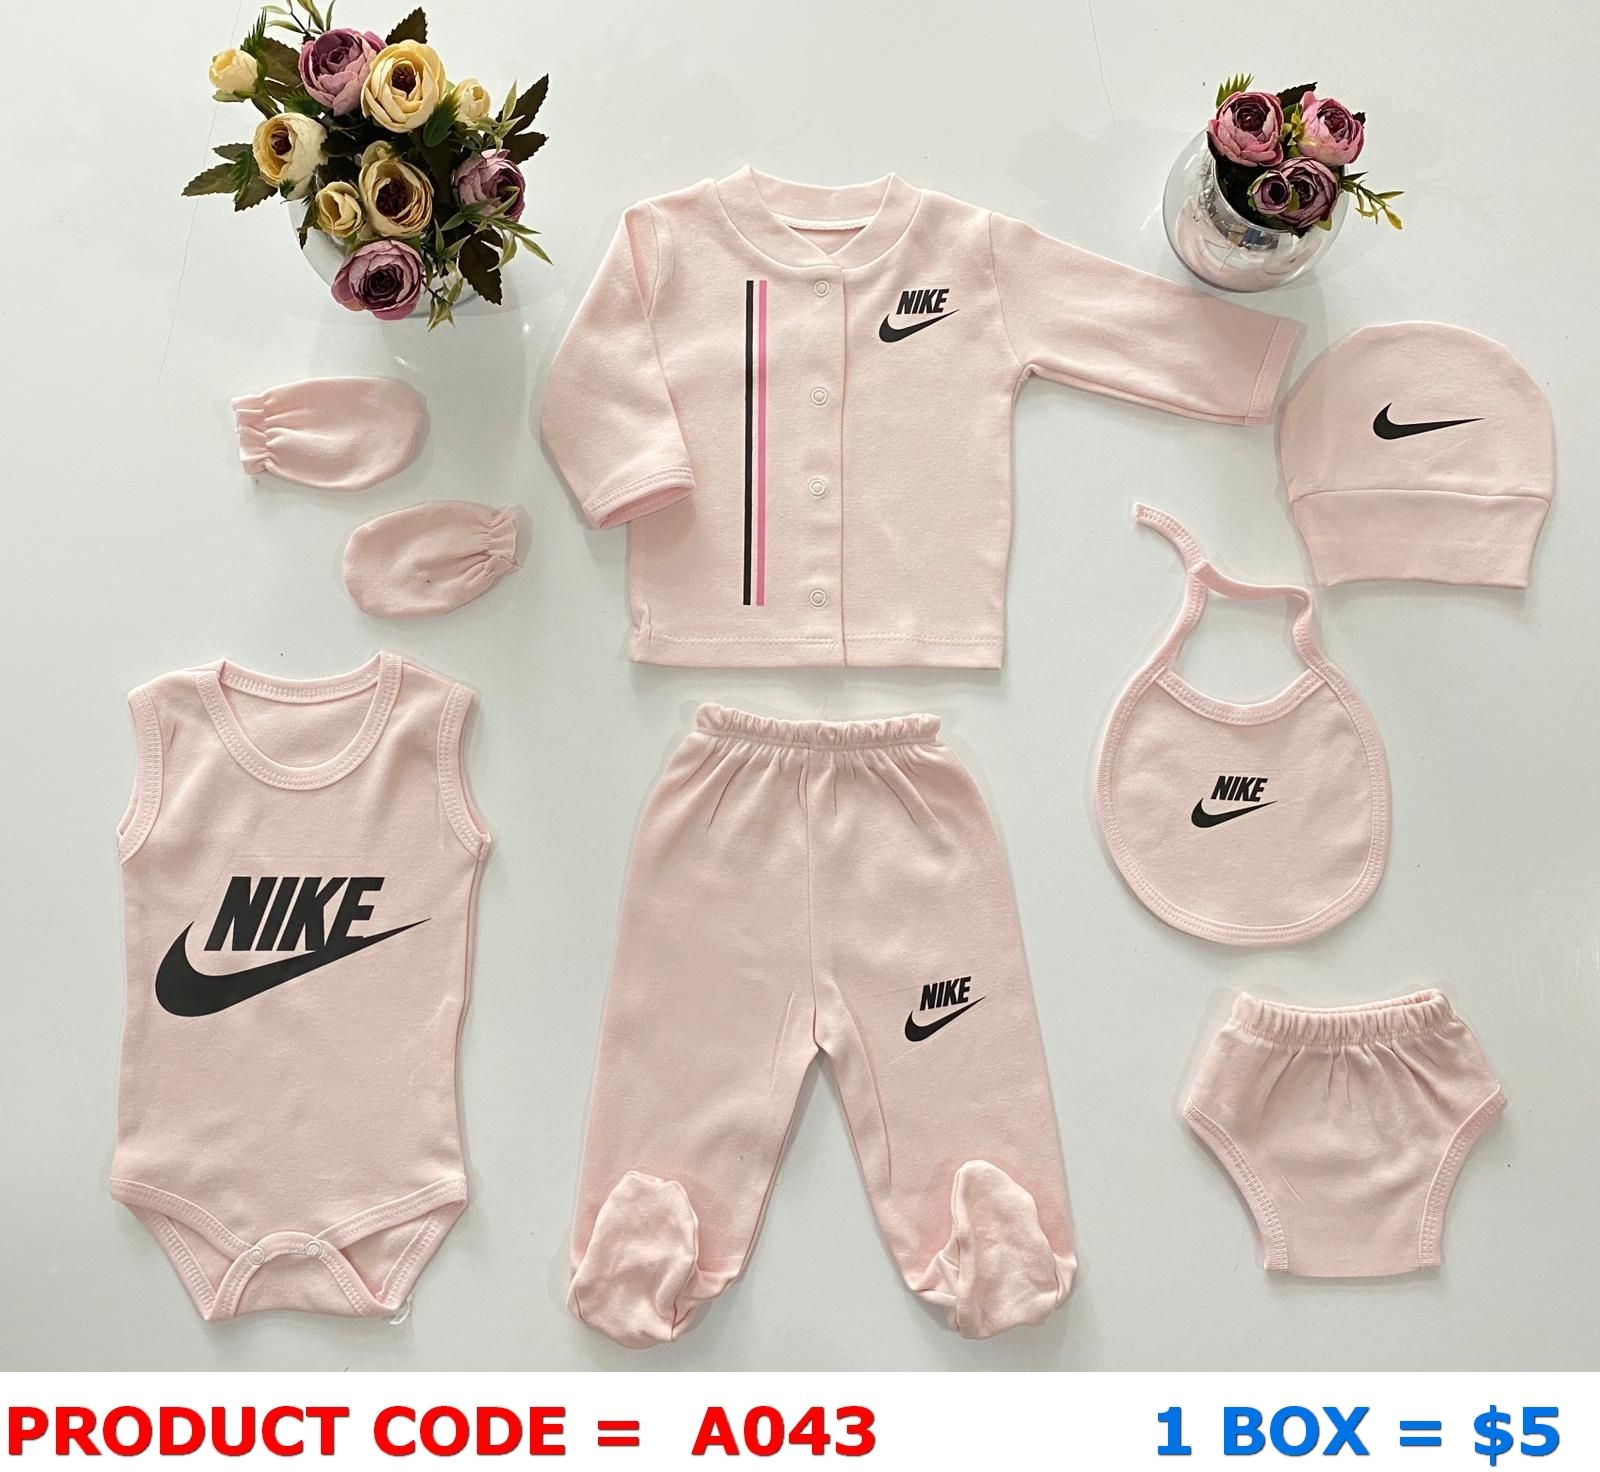 tumor Aplaudir Íncubo  cheap Baby clothes box sets wholesale nike print | Wholesale kids clothing,  Baby outfits newborn, Nike baby clothes